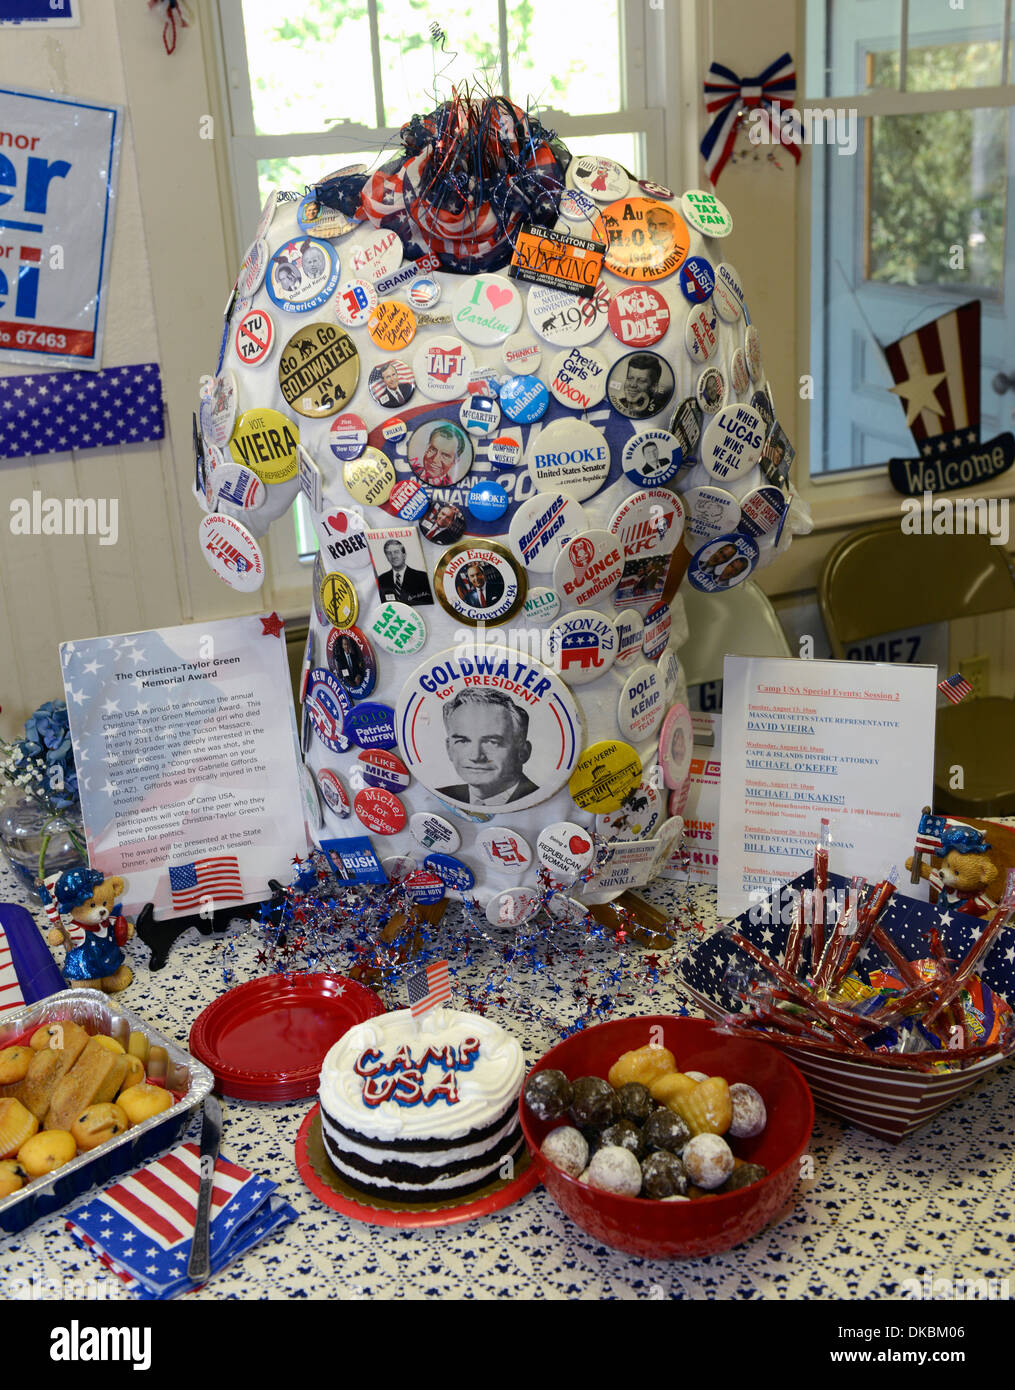 Political memorabilia at Camp USA, a two week non-partisan camp for middle and high school students interested in politcs. - Stock Image